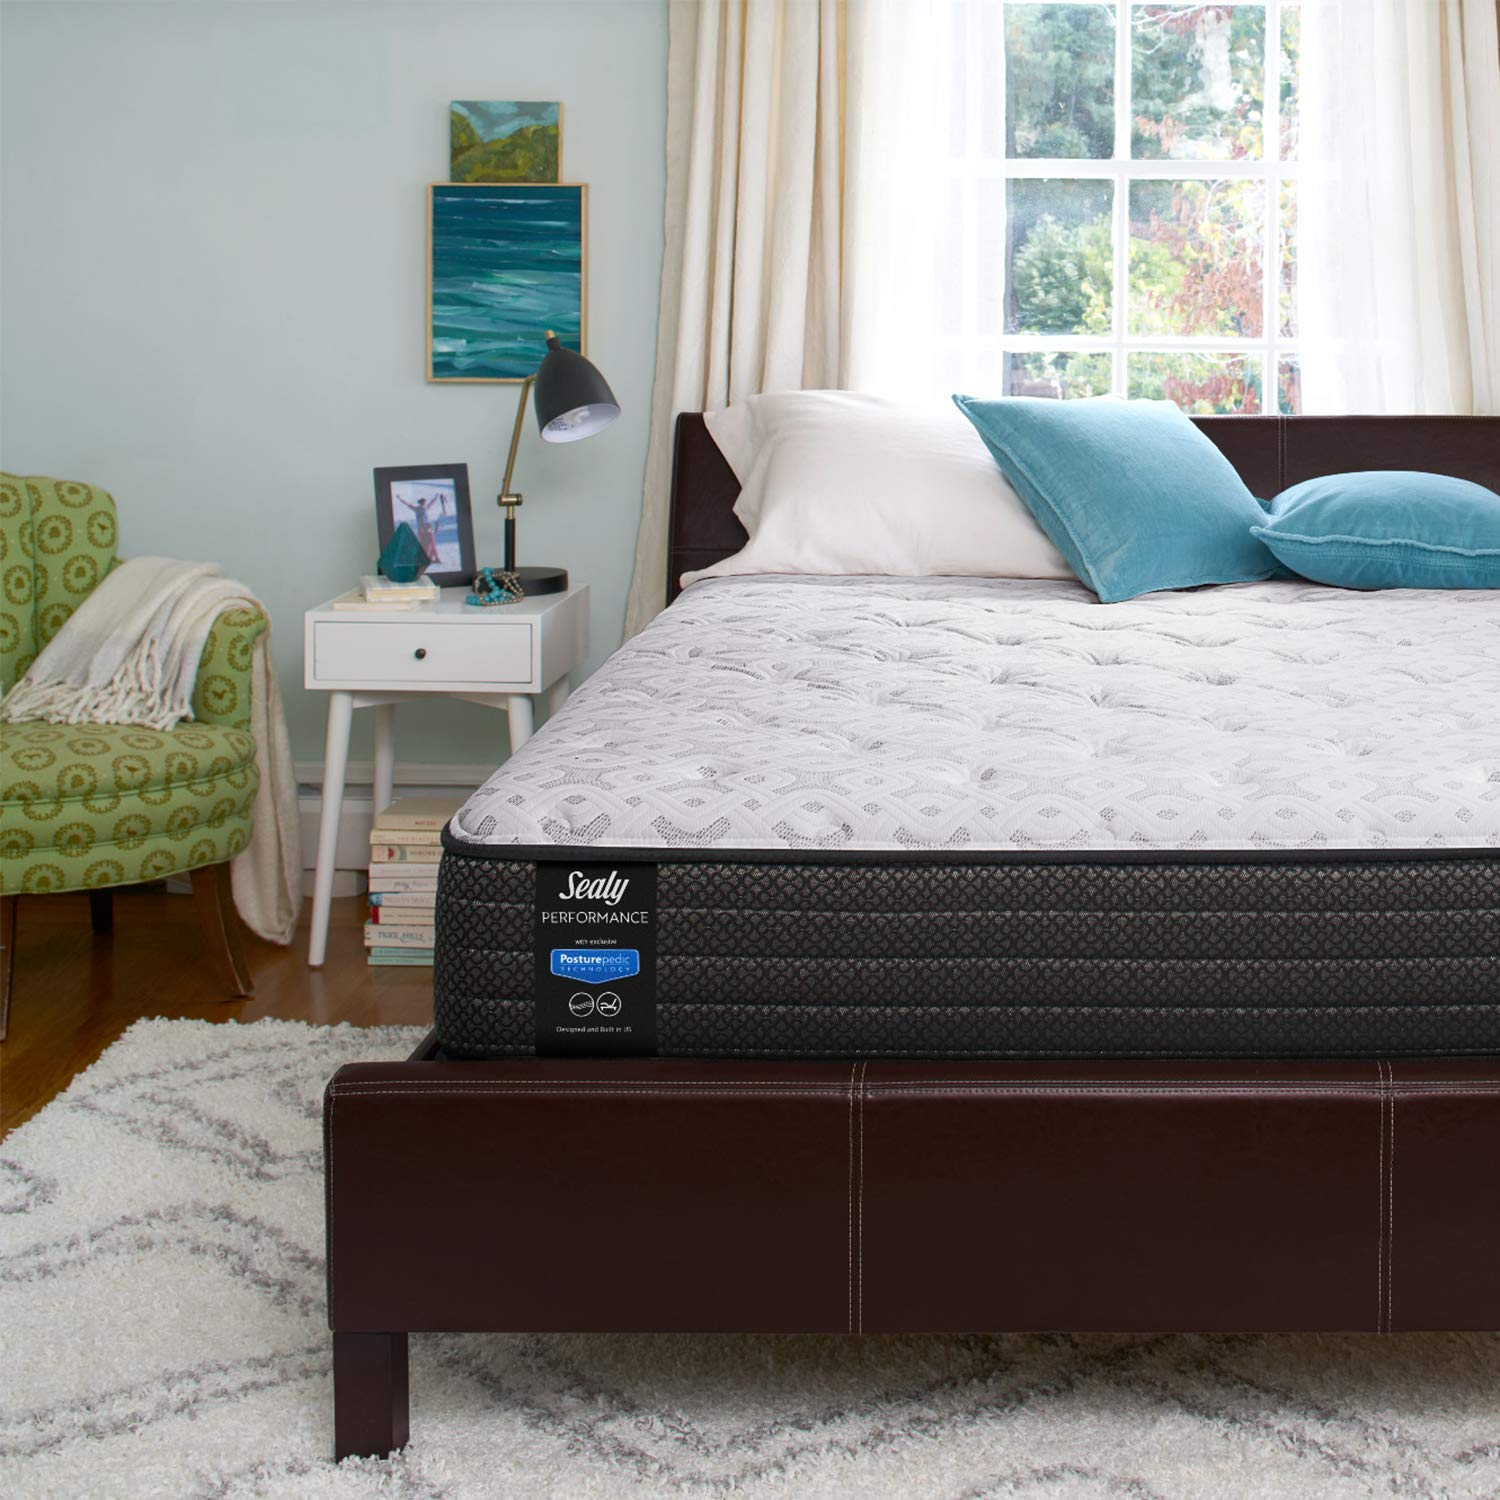 Sealy 13-Inch Plush Eurotop Mattress, King, Made in USA, 10 Year Warranty by Sealy